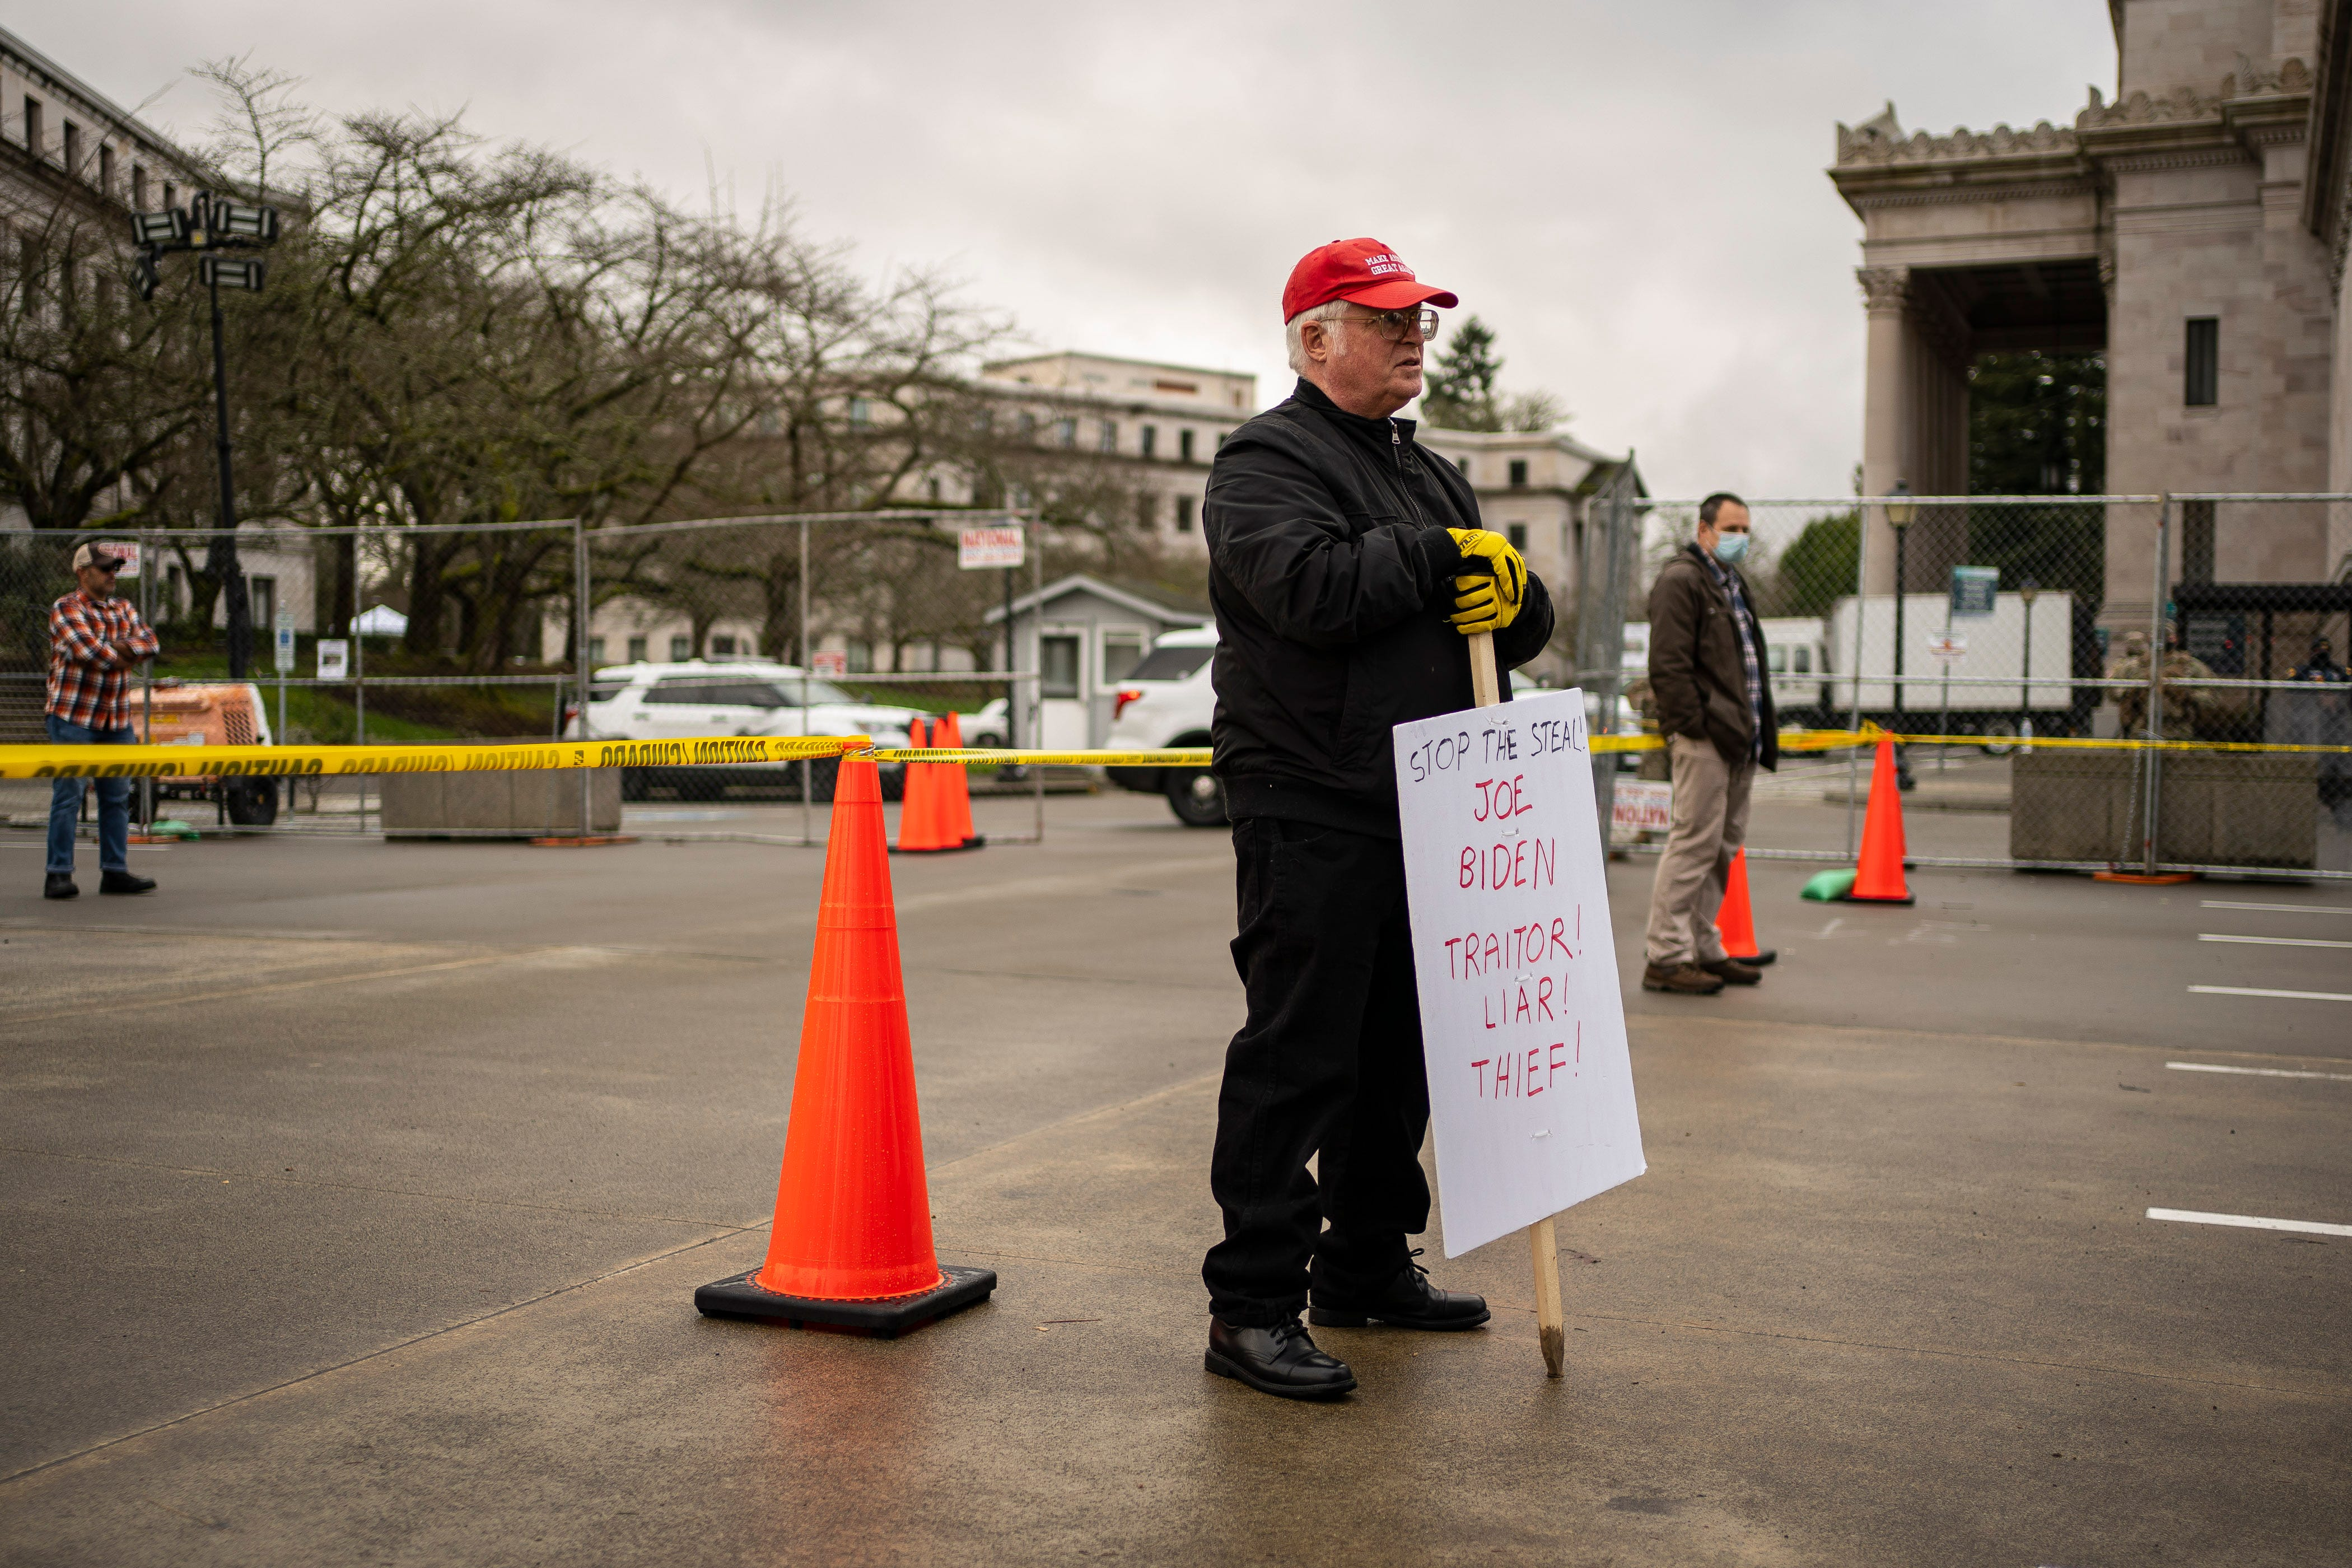 """A Trump supporter holds a sign that reads """"Stop The Steal! Joe Biden Traitor! Liar! Thief!"""" in front of the Washington State Capitol on Sunday, Jan. 17, 2021, in Olympia, Washington."""